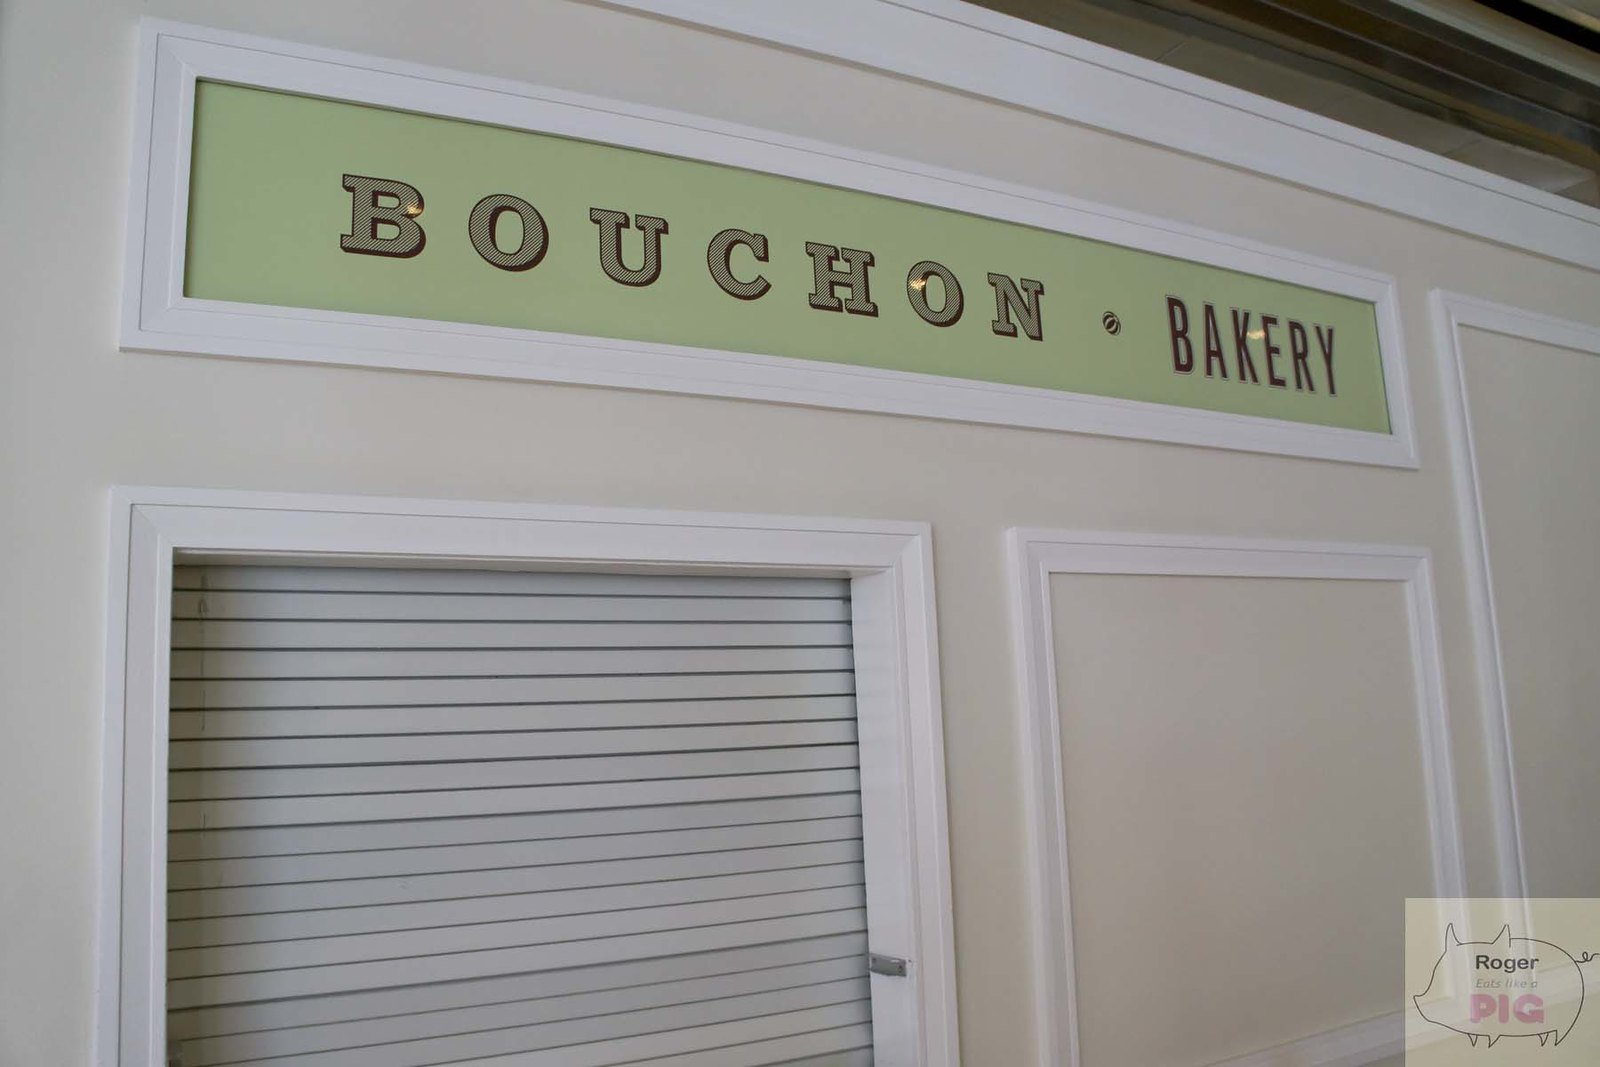 Bouchon Bakery   Famous Bakery from Thomas Keller (Per Se and French Laundry)